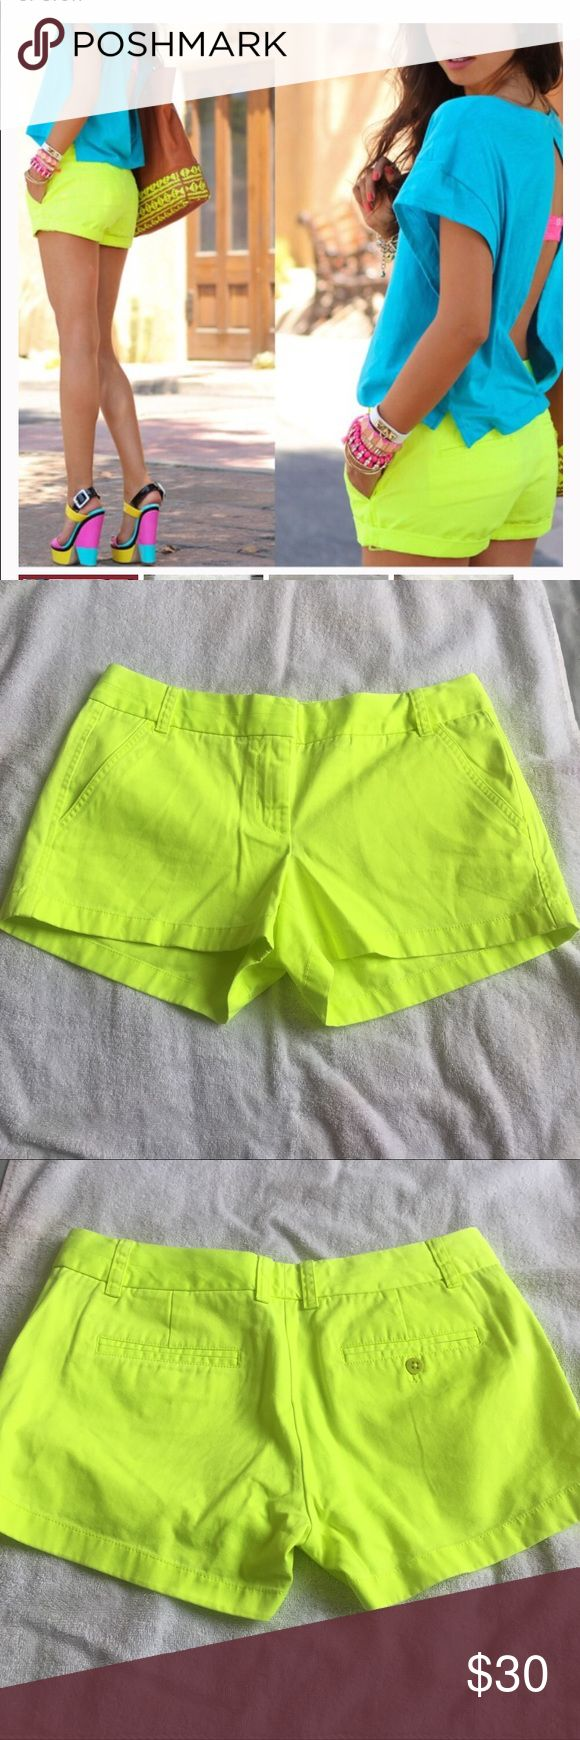 J. Crew Shorts Excellent condition J. Crew neon lime green broken in chino shorts. Size 6. 100% cotton. No trades, offers welcome. J. Crew Pants